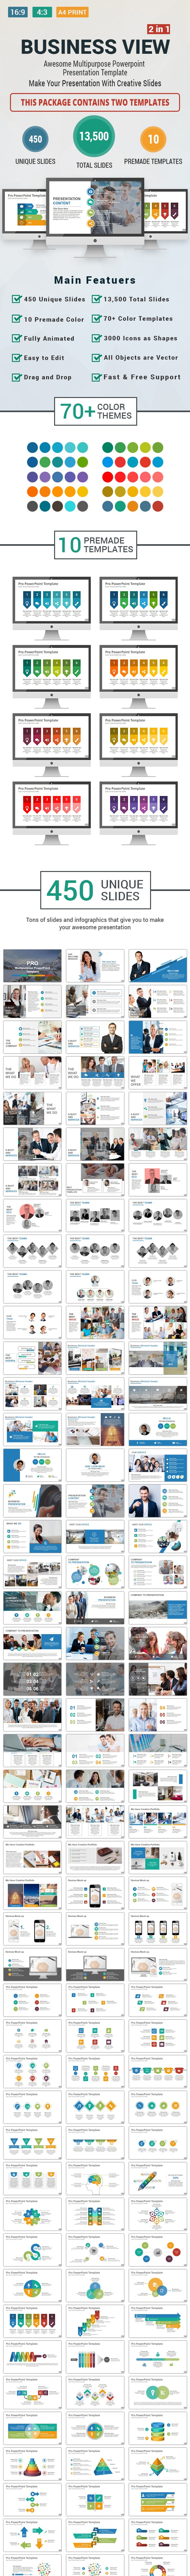 Business view PowerPoint Presentation Bundle - Business PowerPoint Templates